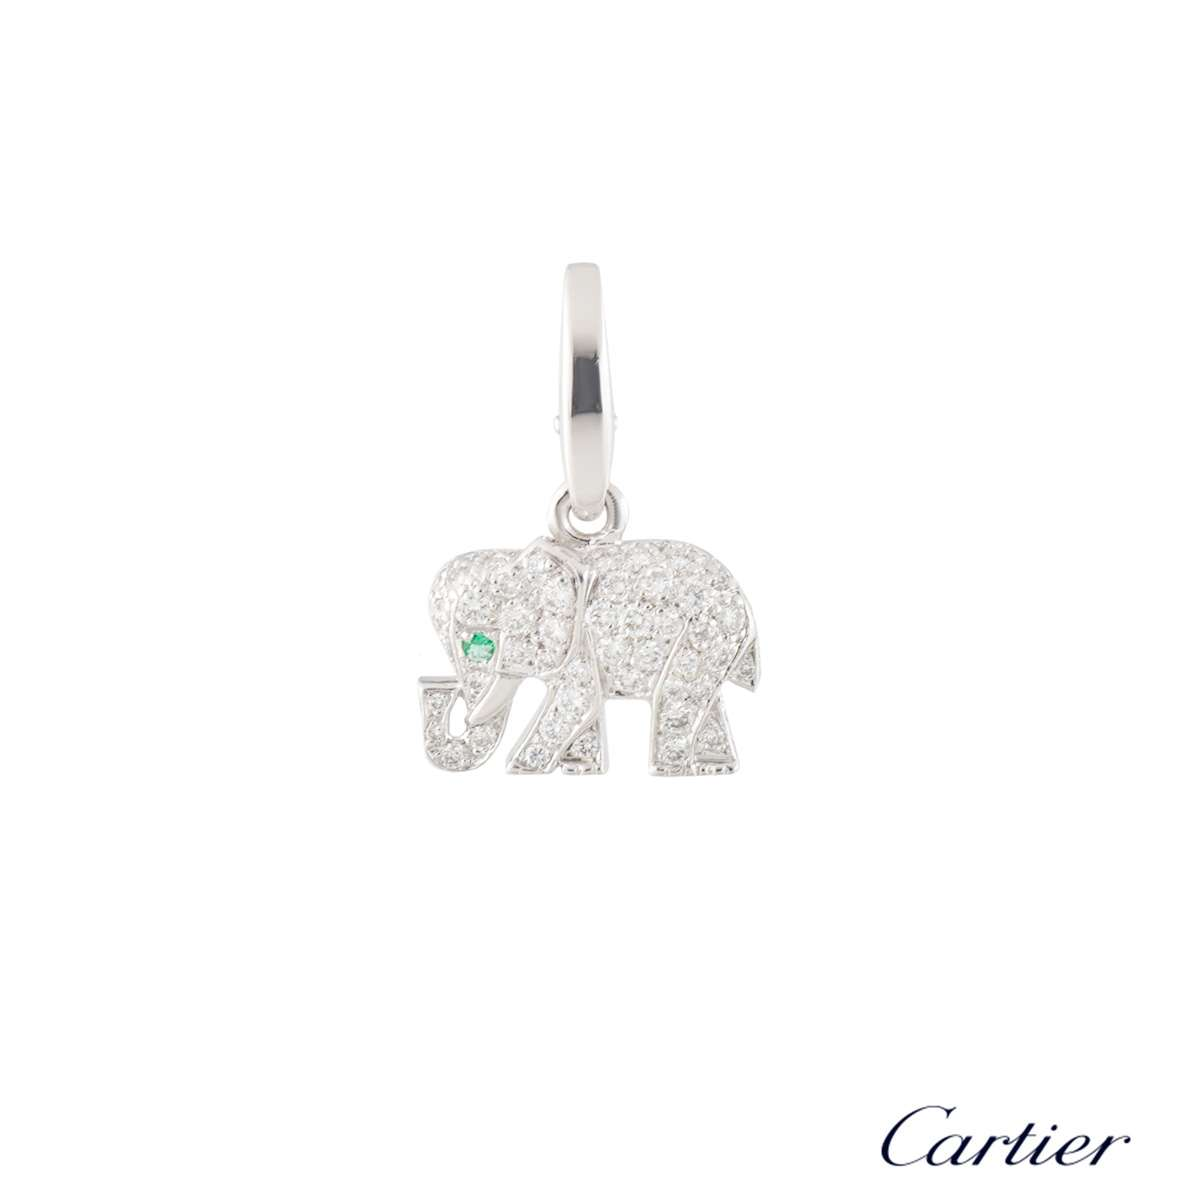 Cartier White Gold Diamond Elephant Charm